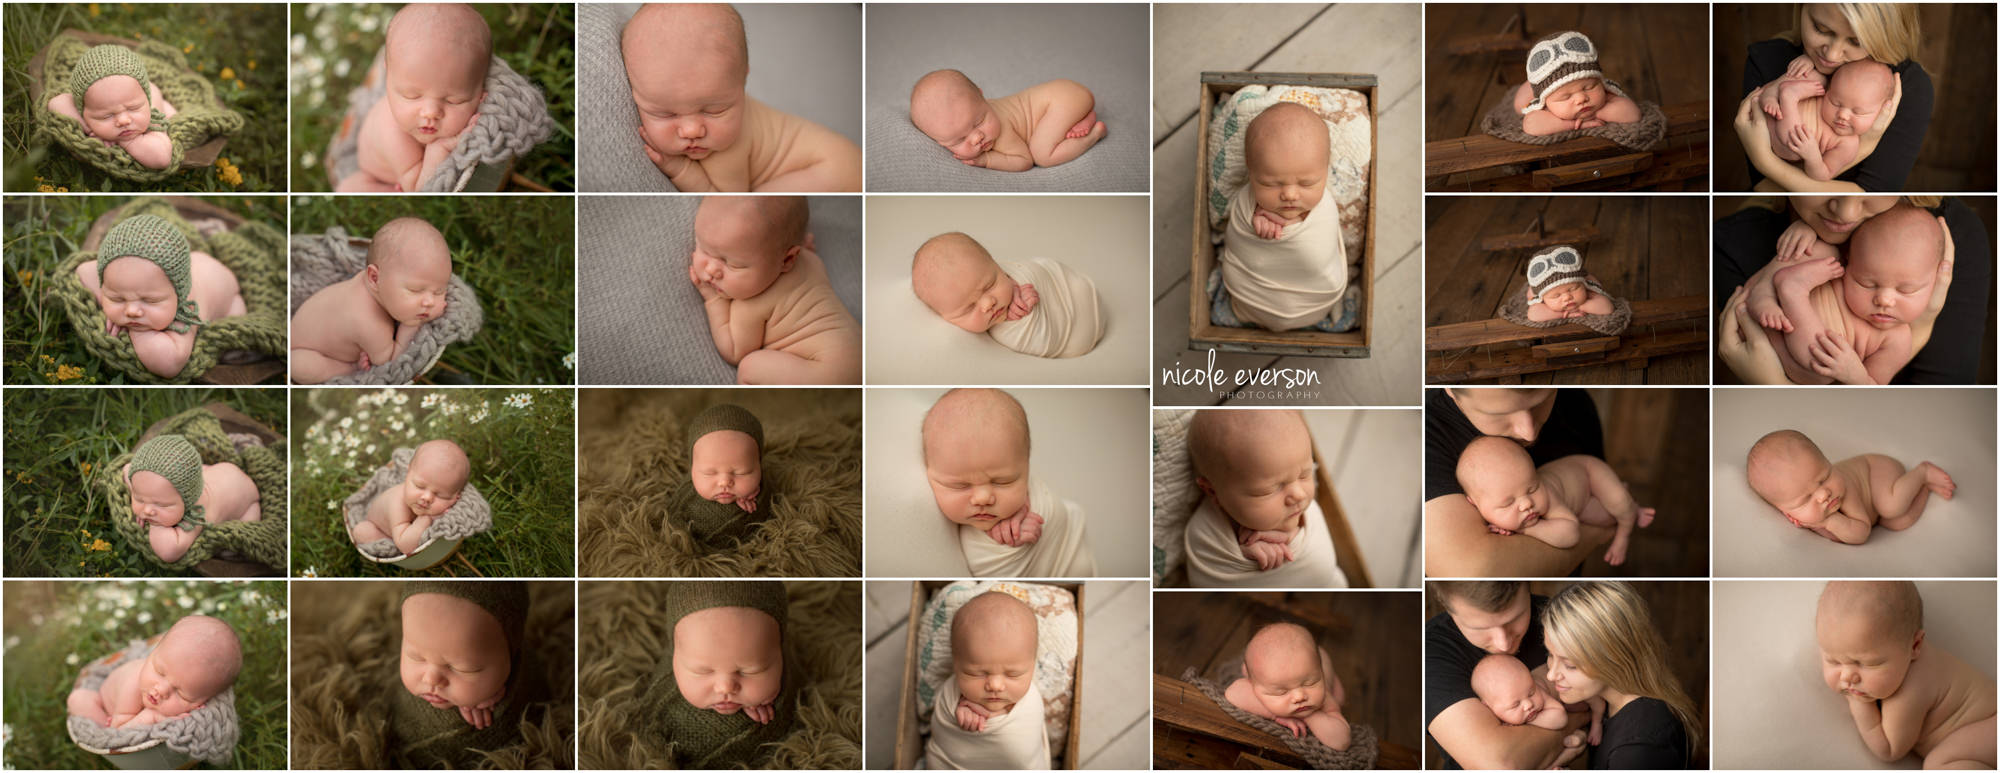 newborn photographed by Nicole Everson Photography destin florida